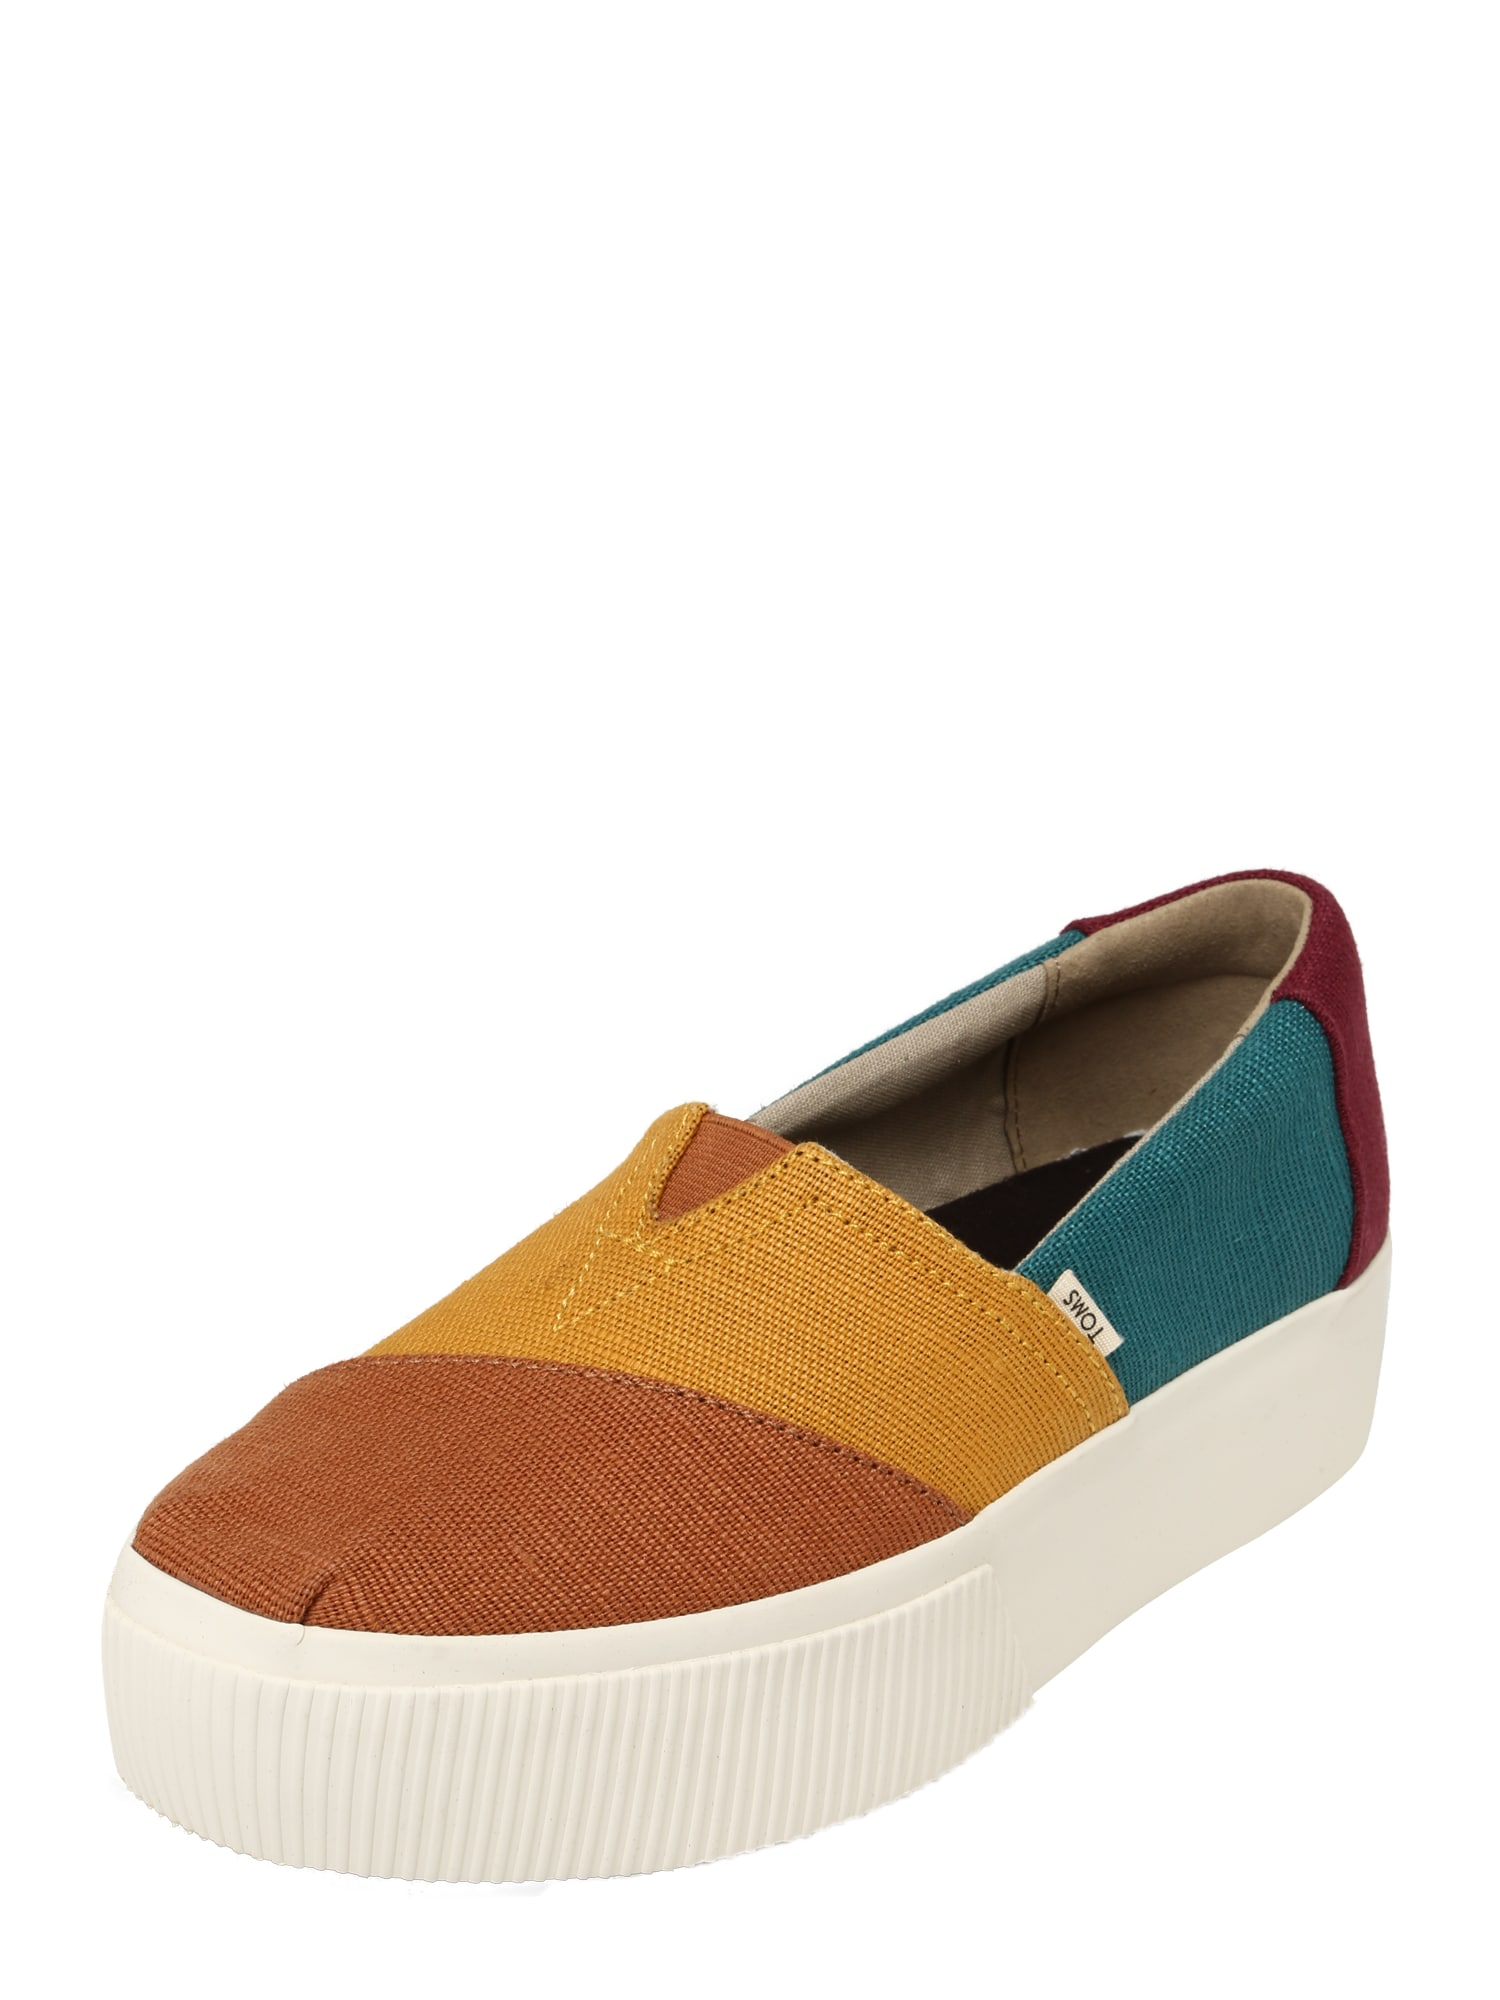 Slip on boty ALPARGATA BOARDWALK mix barev TOMS